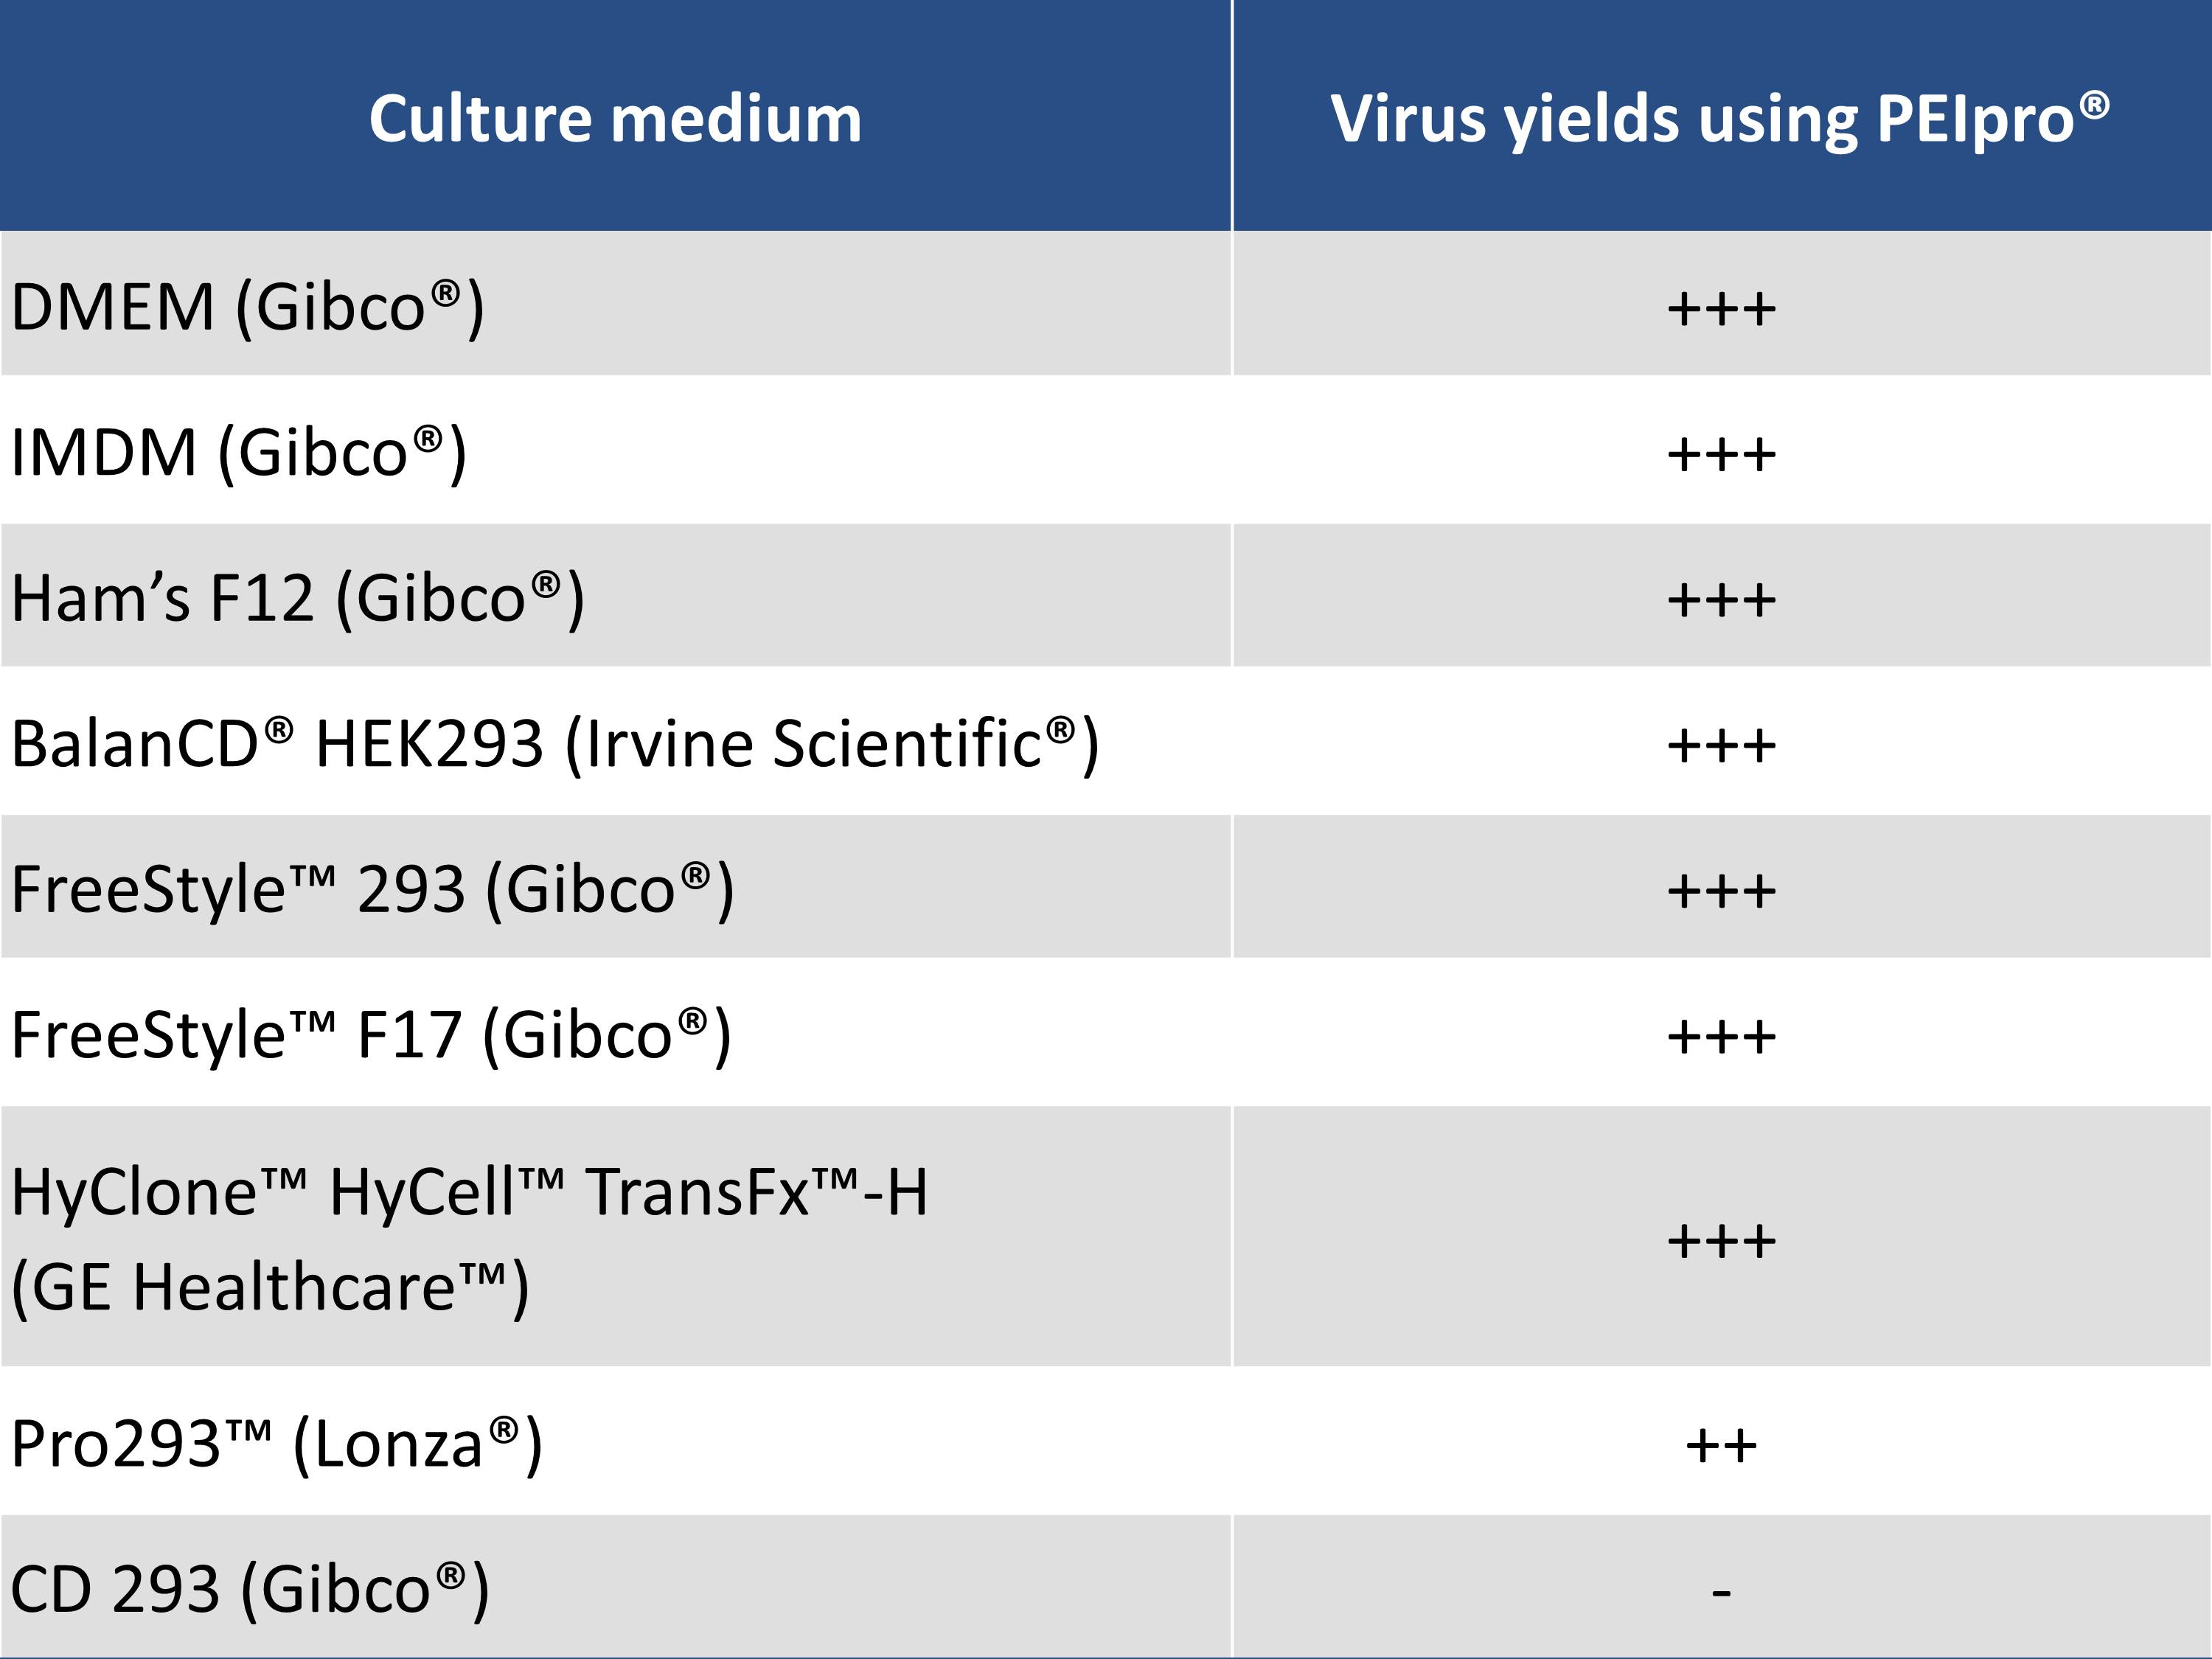 PEI - Virus yields compared with different culture media